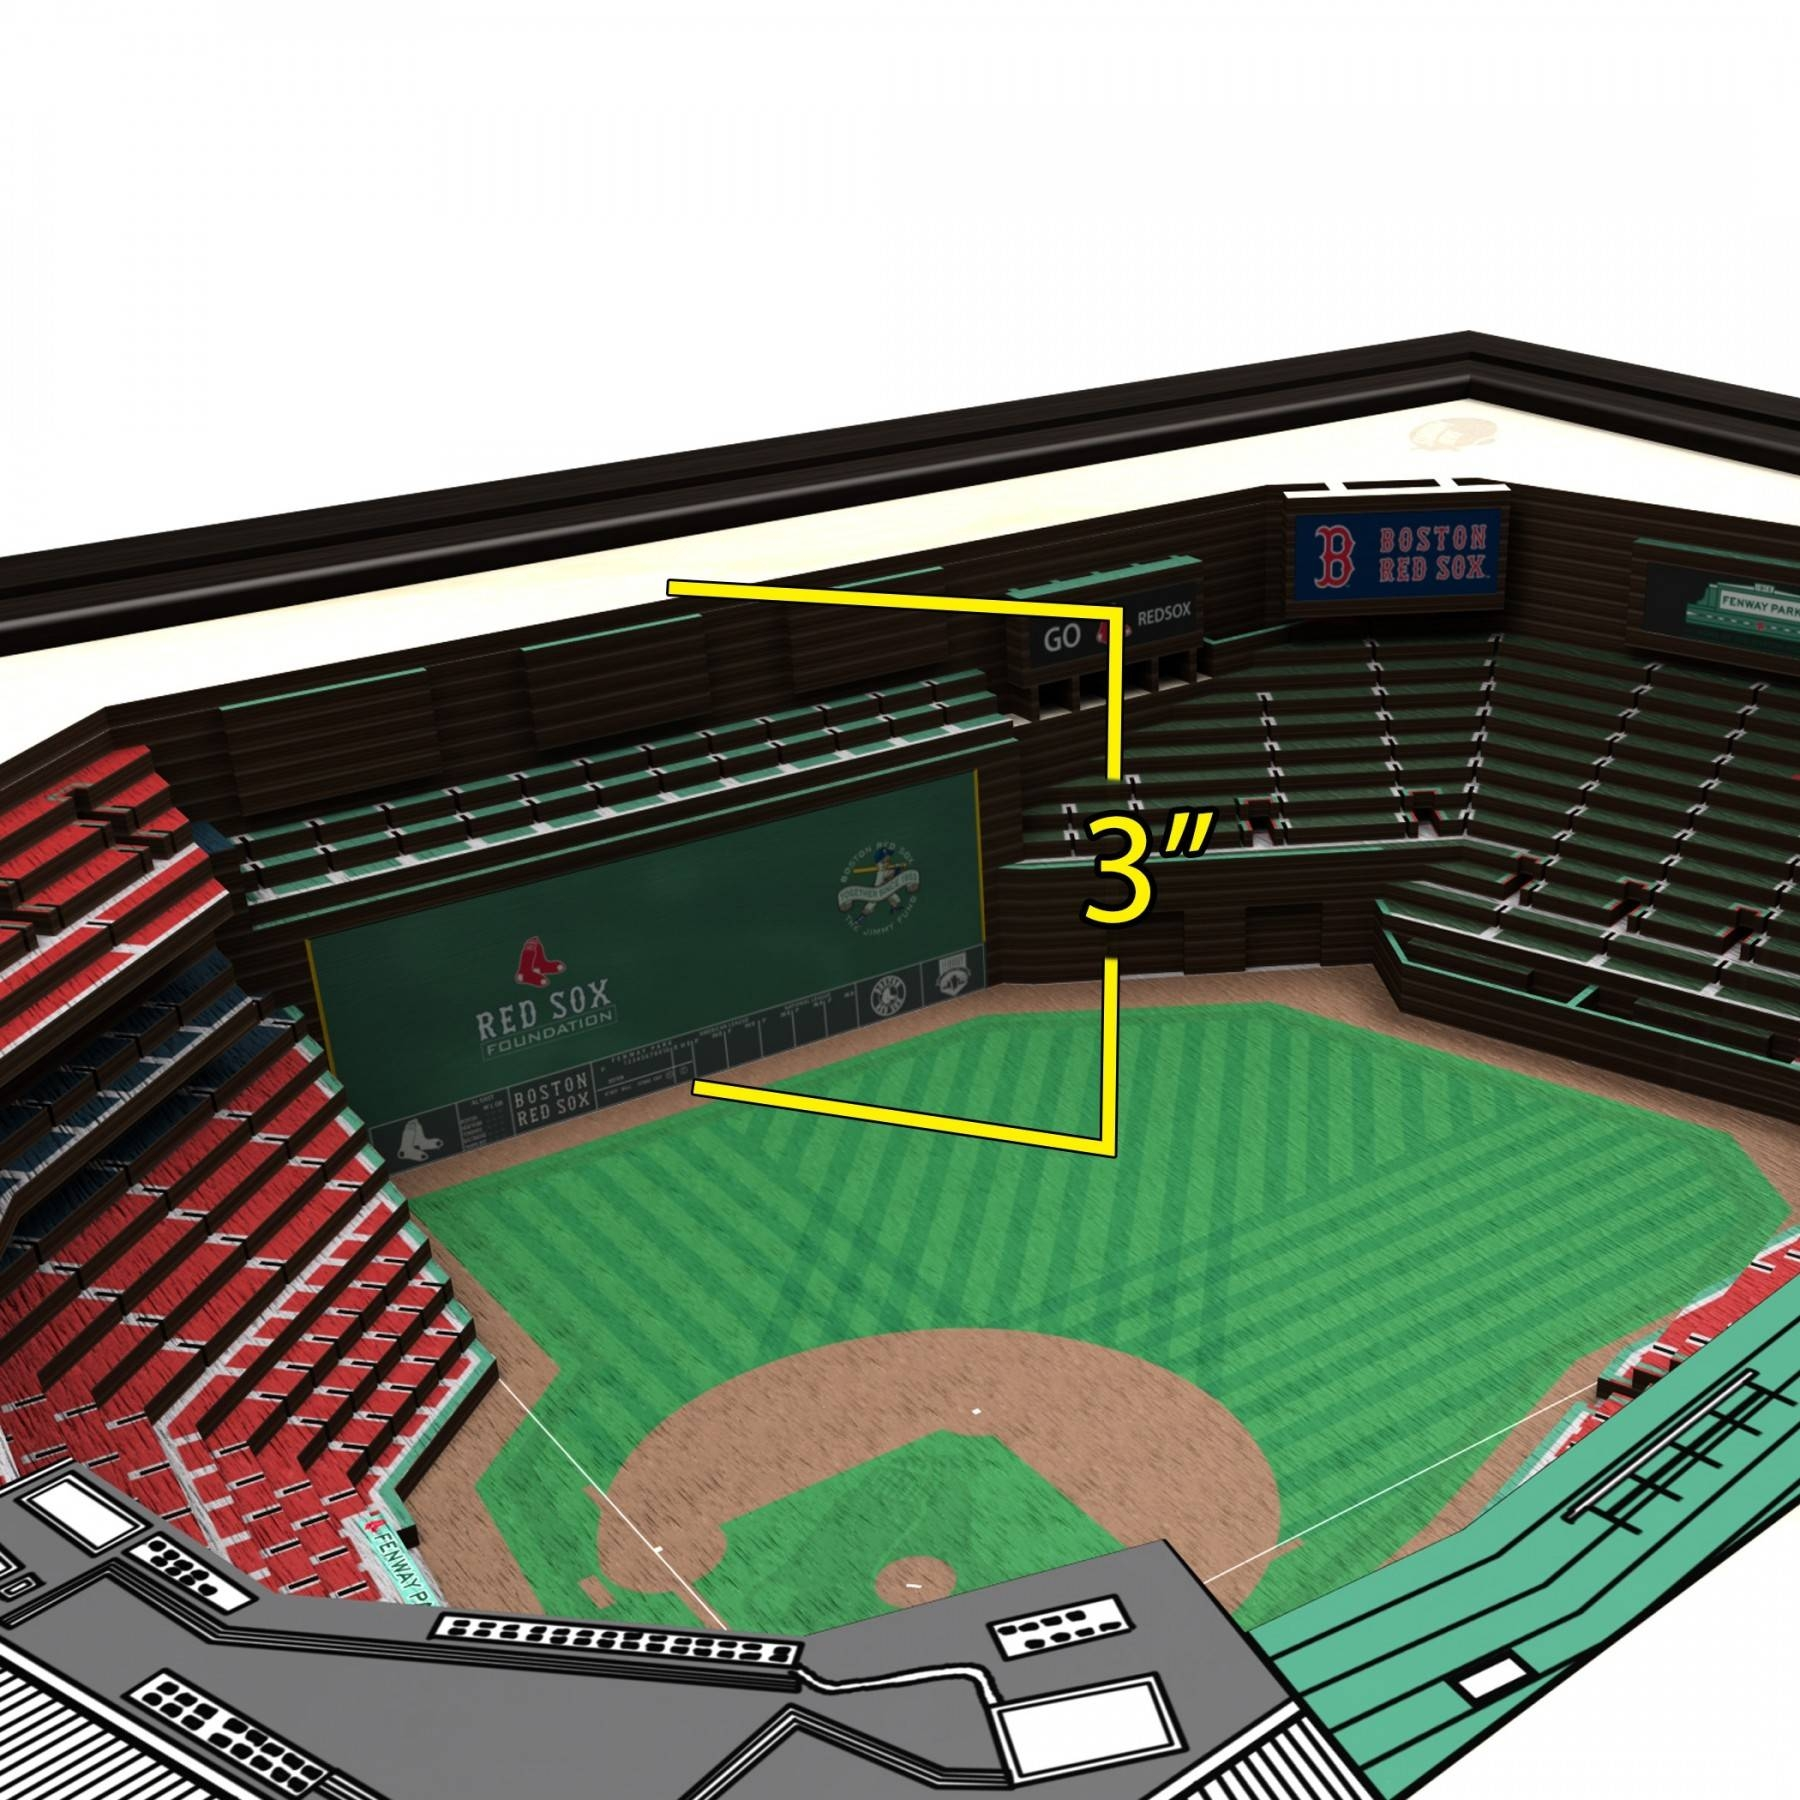 Boston Red Sox Stadiumview Wall Art – Fenway Park 3 D Reproduction Intended For Recent Red Sox Wall Art (View 11 of 23)